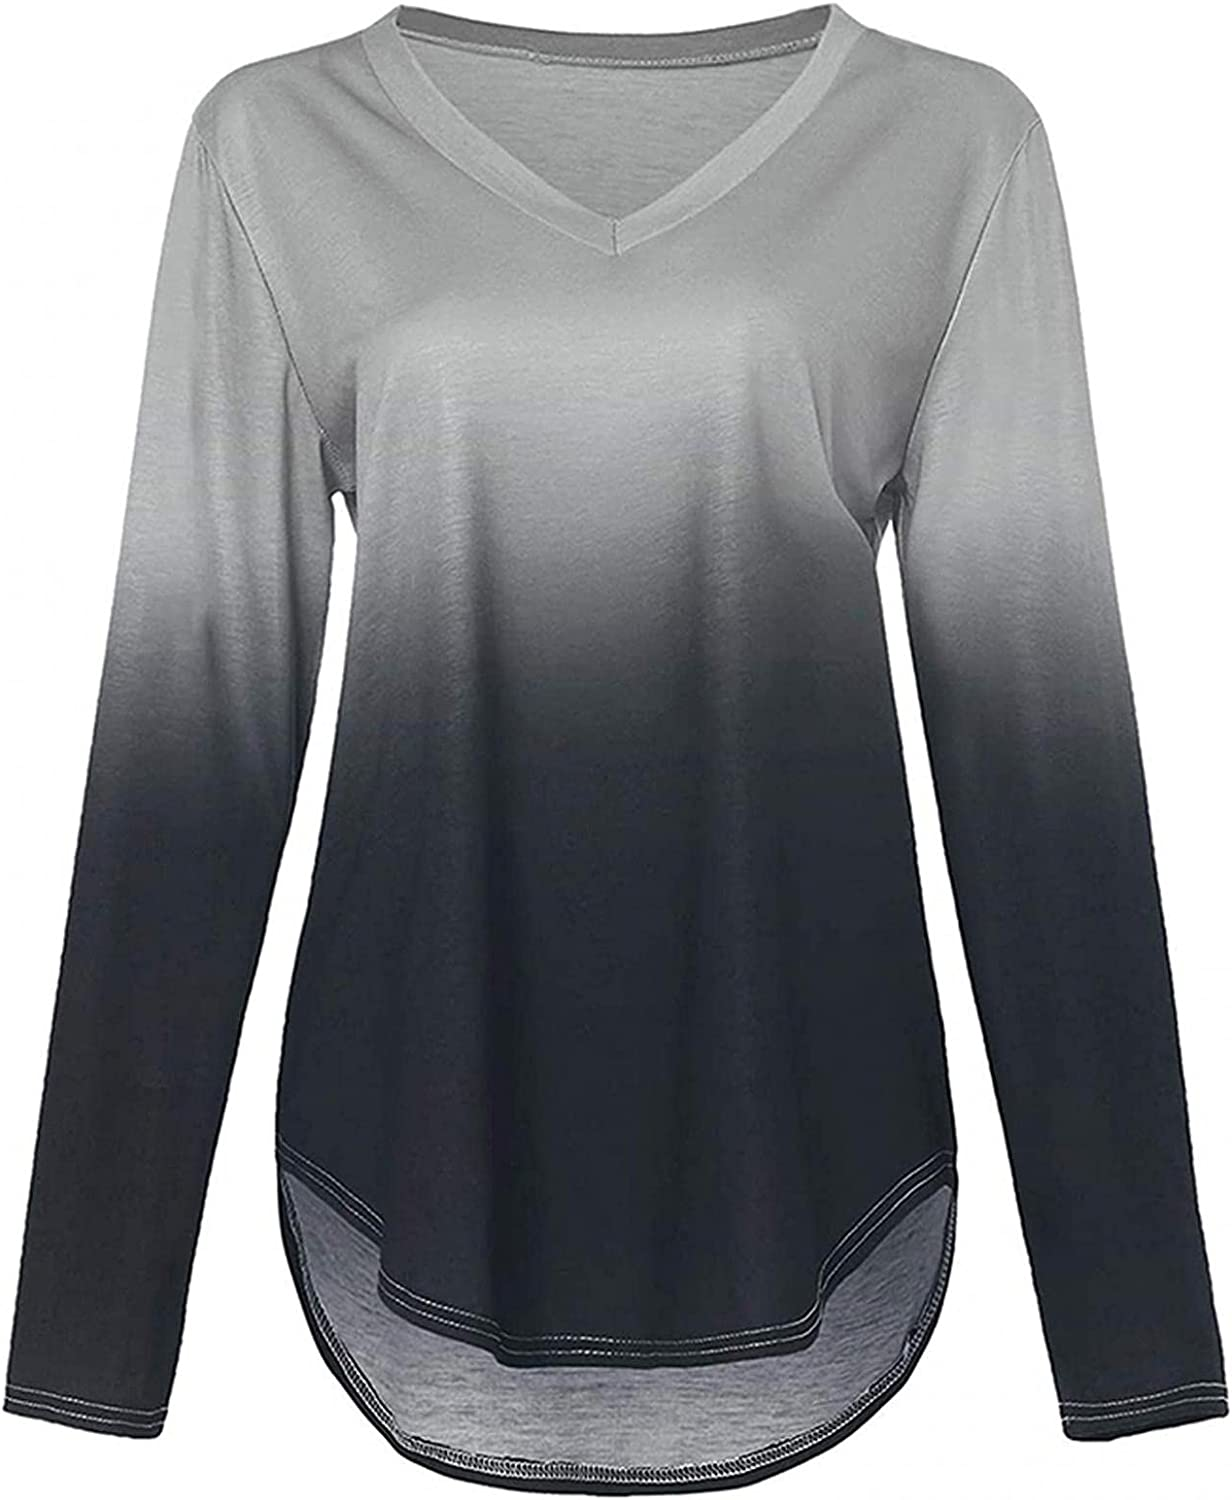 UOCUFY Long Sleeve Tops for Women, Womens Casual Crewneck Loose Long Sleeve T Shirts Tunics Tops Pullover Sweatshirts